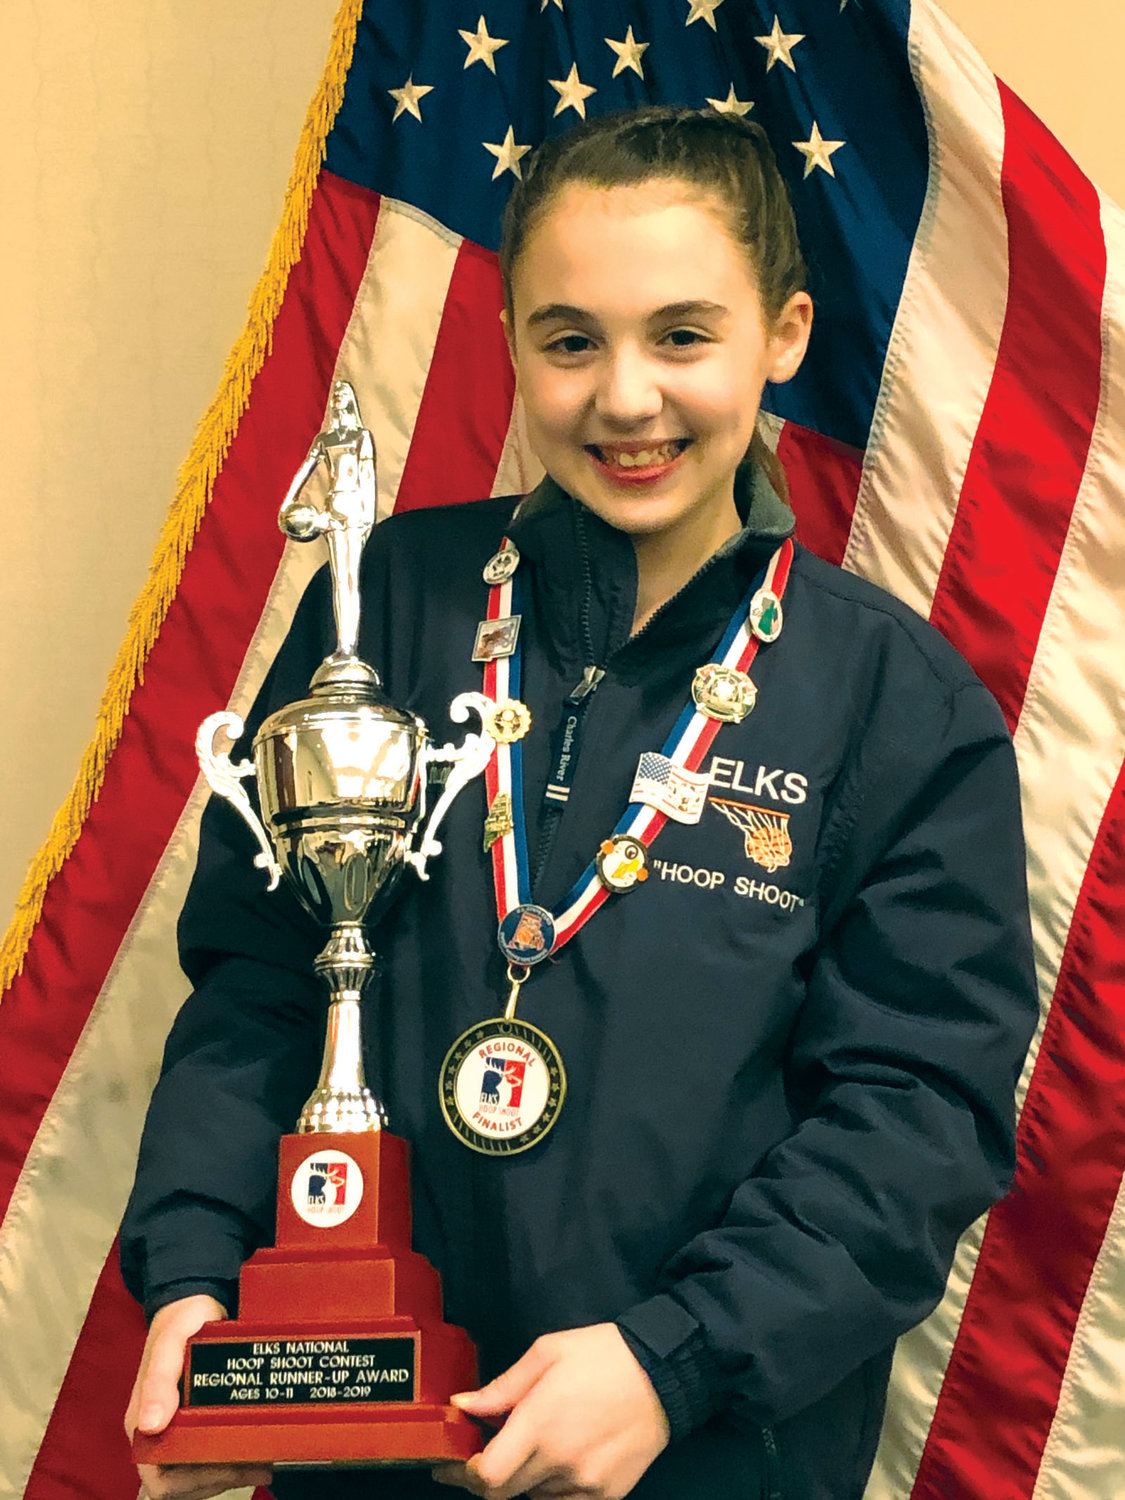 SUPER SHOOTER: Warwick's Sarah Berube, 11. is all smiles moments after receiving the prestigious New England Elks Hoop Shoot Champion runner-up trophy and medals during Saturday's awards ceremony inside Deering High School in Portland, Maine.